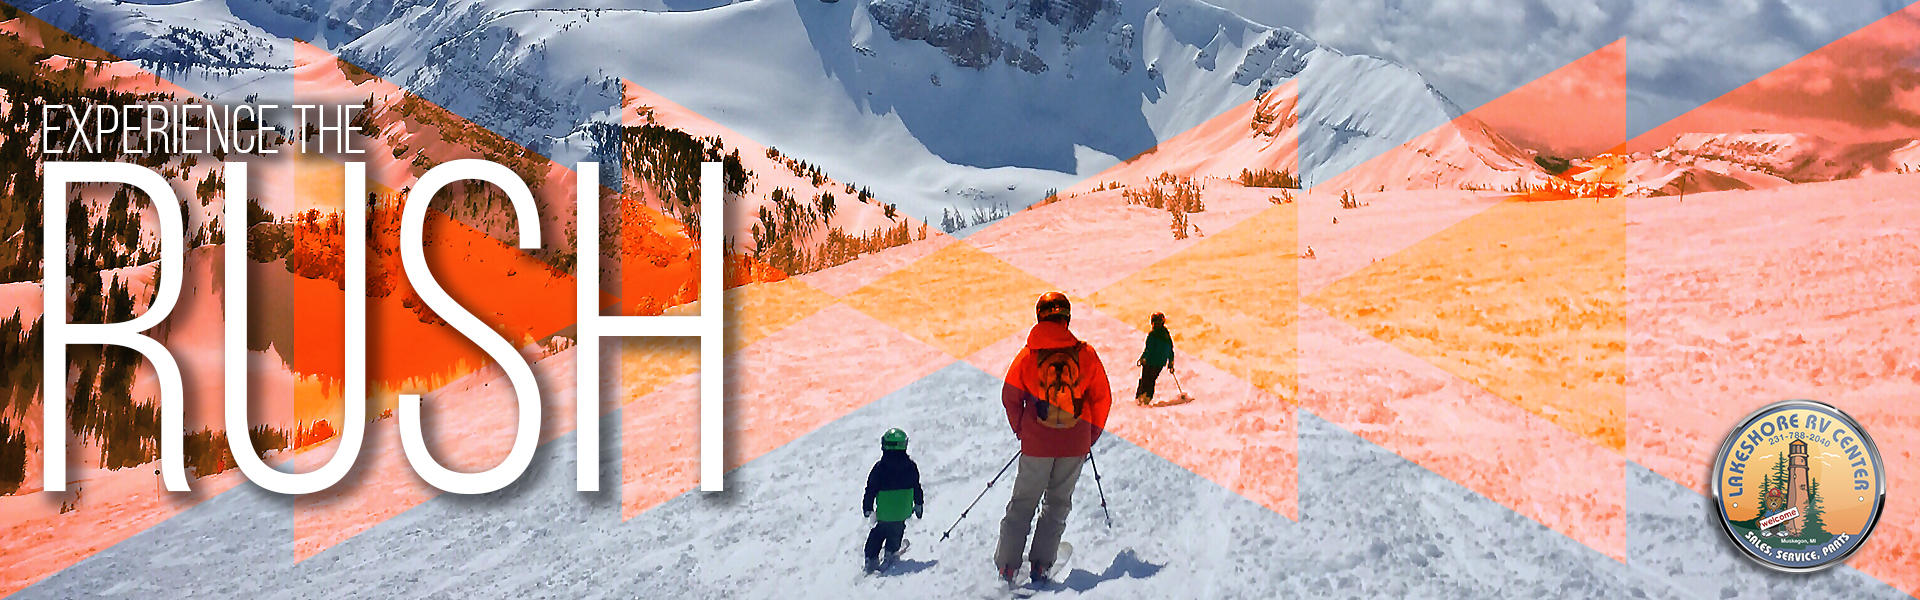 Family skiing in Jackson Hole, WY - Experience the rush